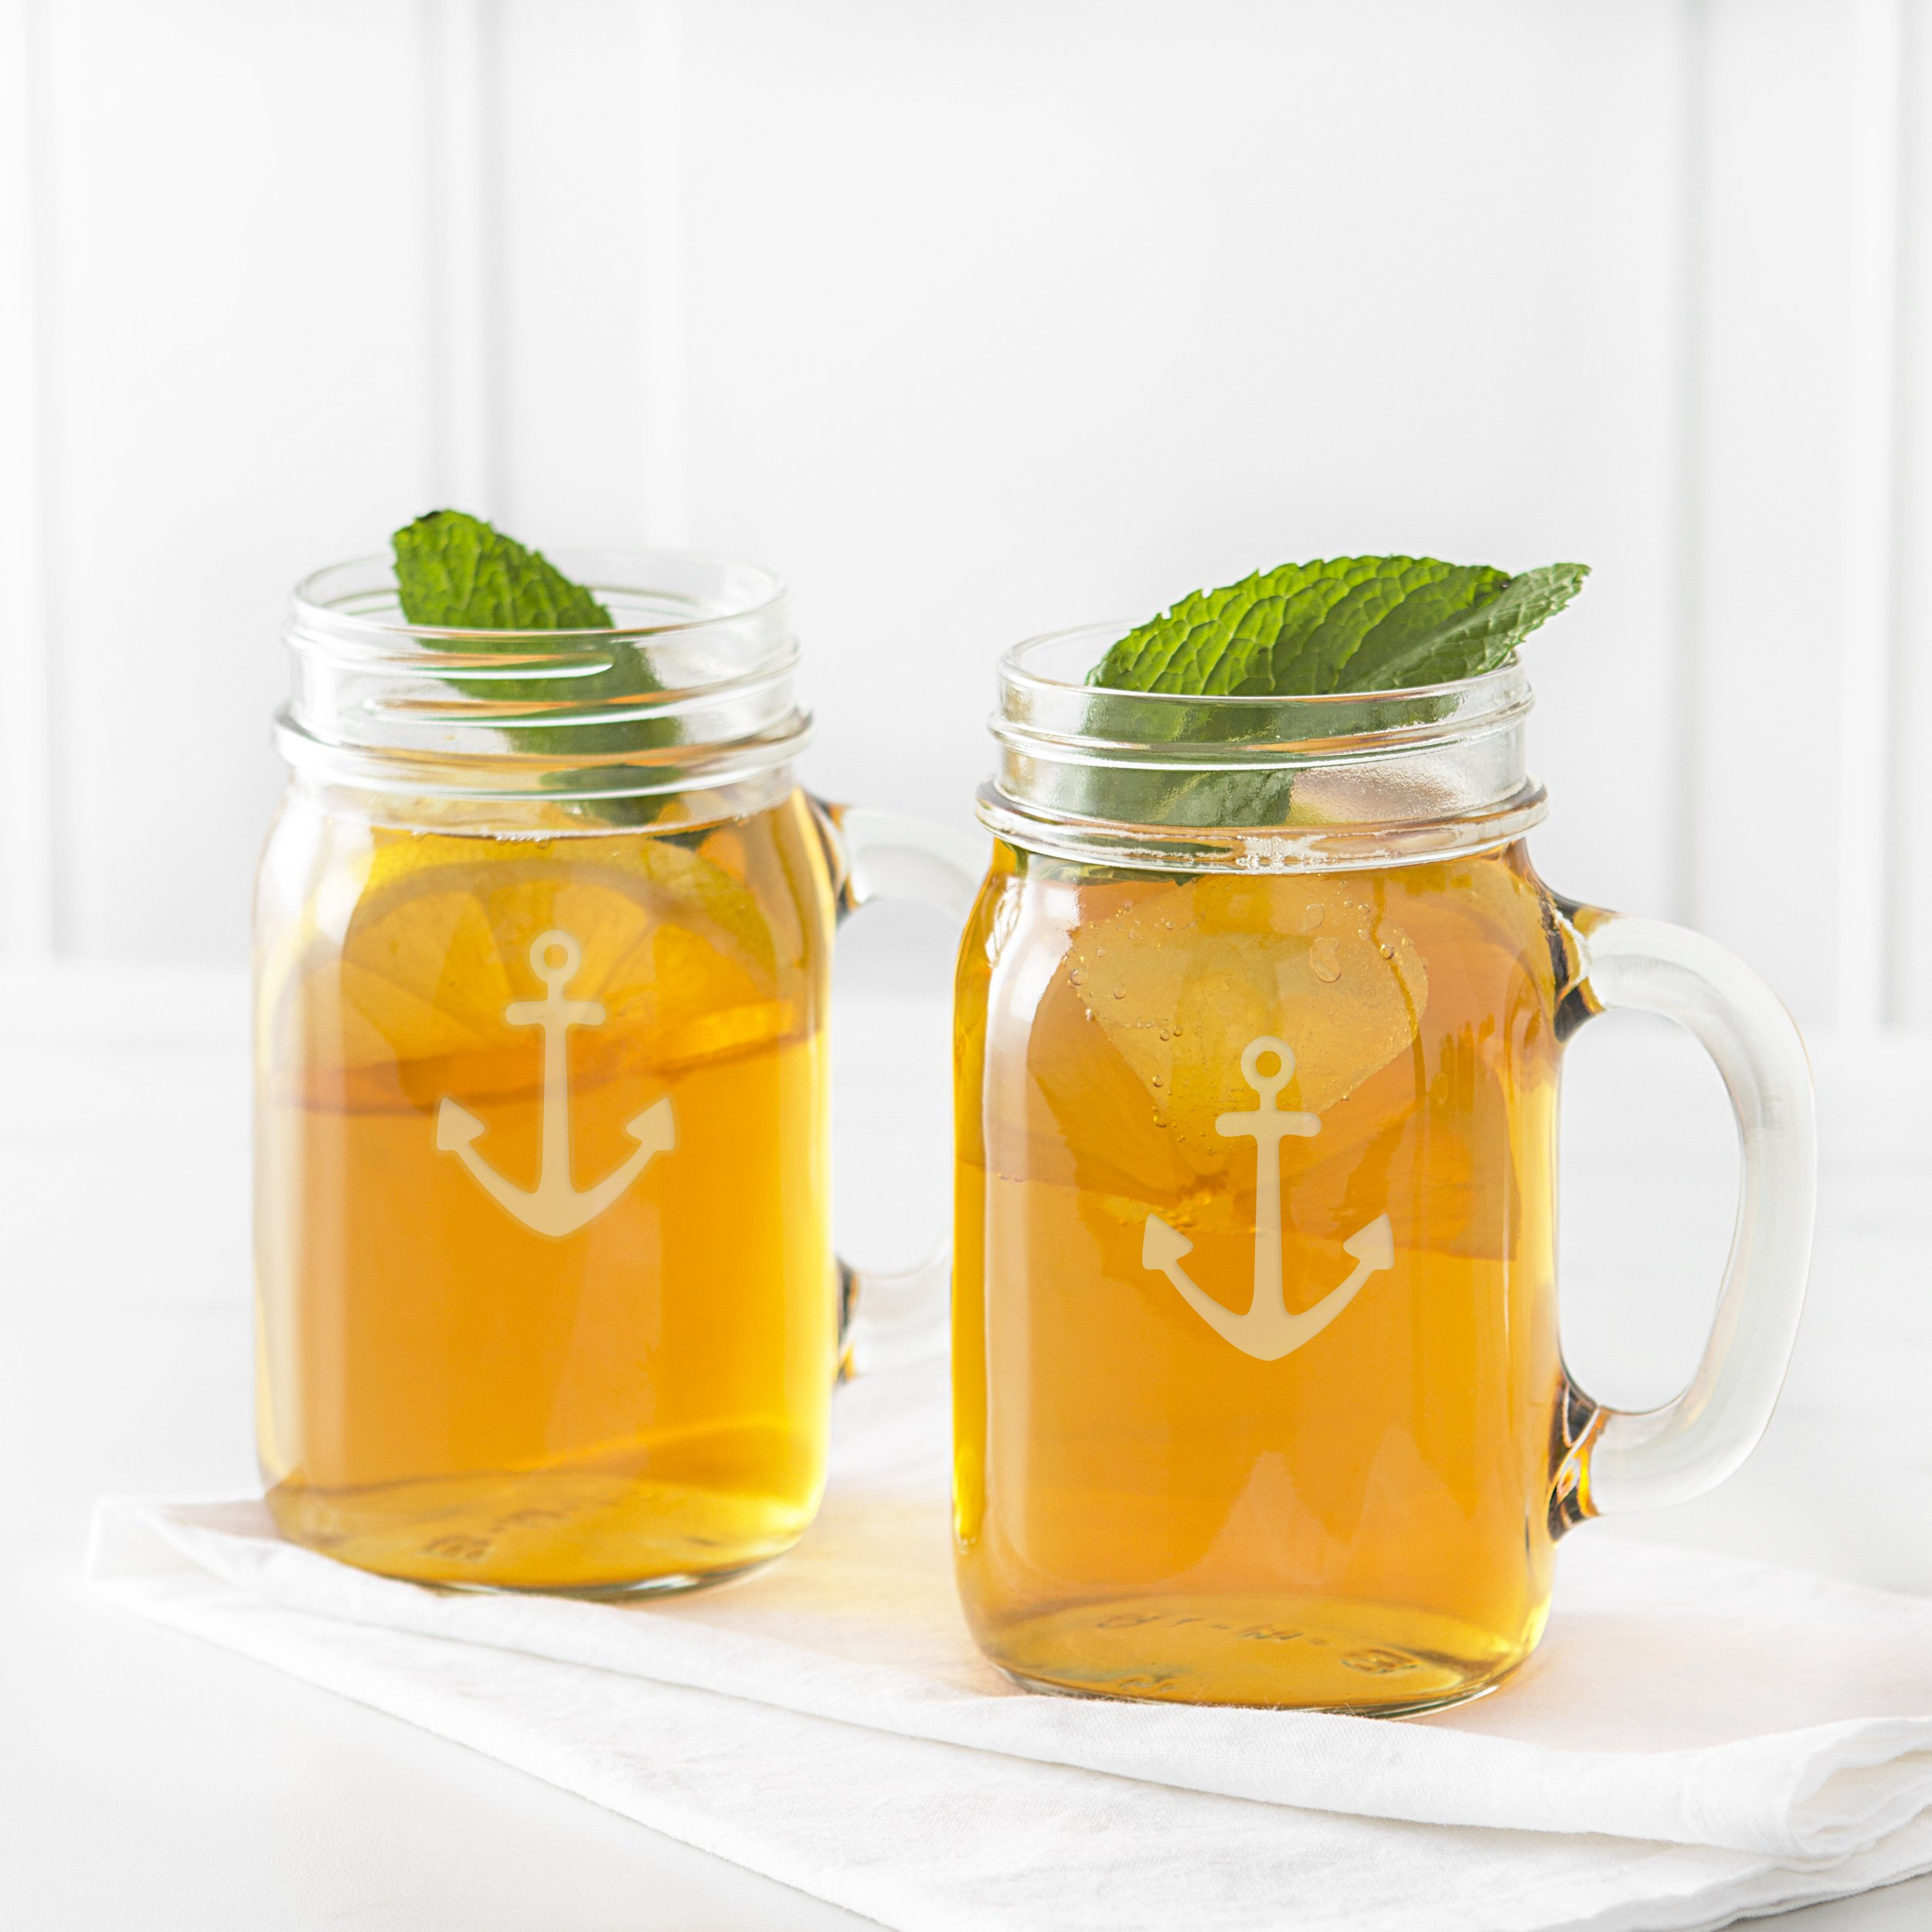 Cathy's Concepts CCA1190 Anchor Old Fashioned Drinking Jars Set Of 4 by Cathy's Concepts (Image #11)